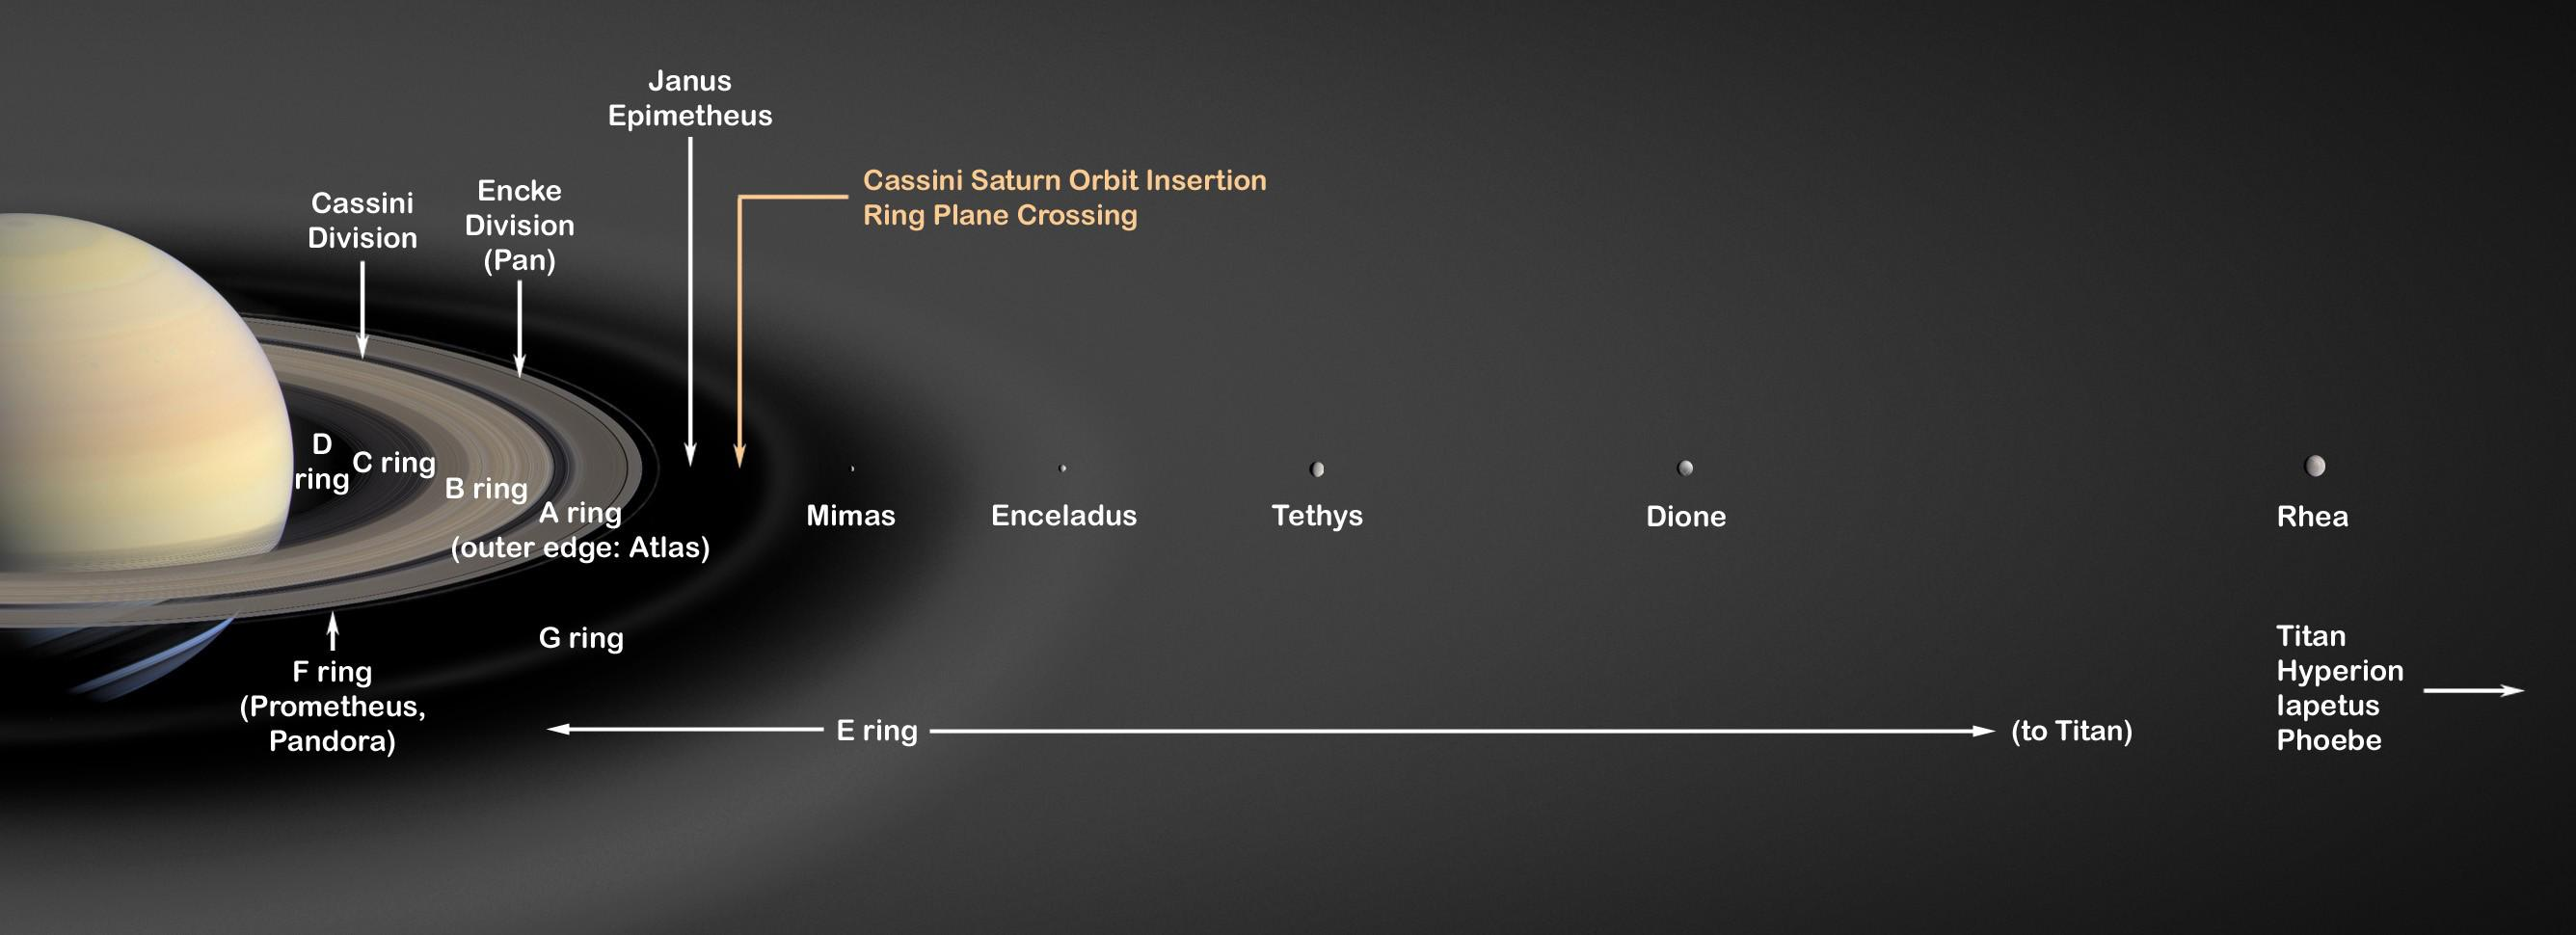 saturn an image makeover Saturn: an image makeover the saturn brand served the purpose of segmenting the market in order for the company to generate more revenues the segment of customers that saturn is targeting is the customer that buys imported compact cars.